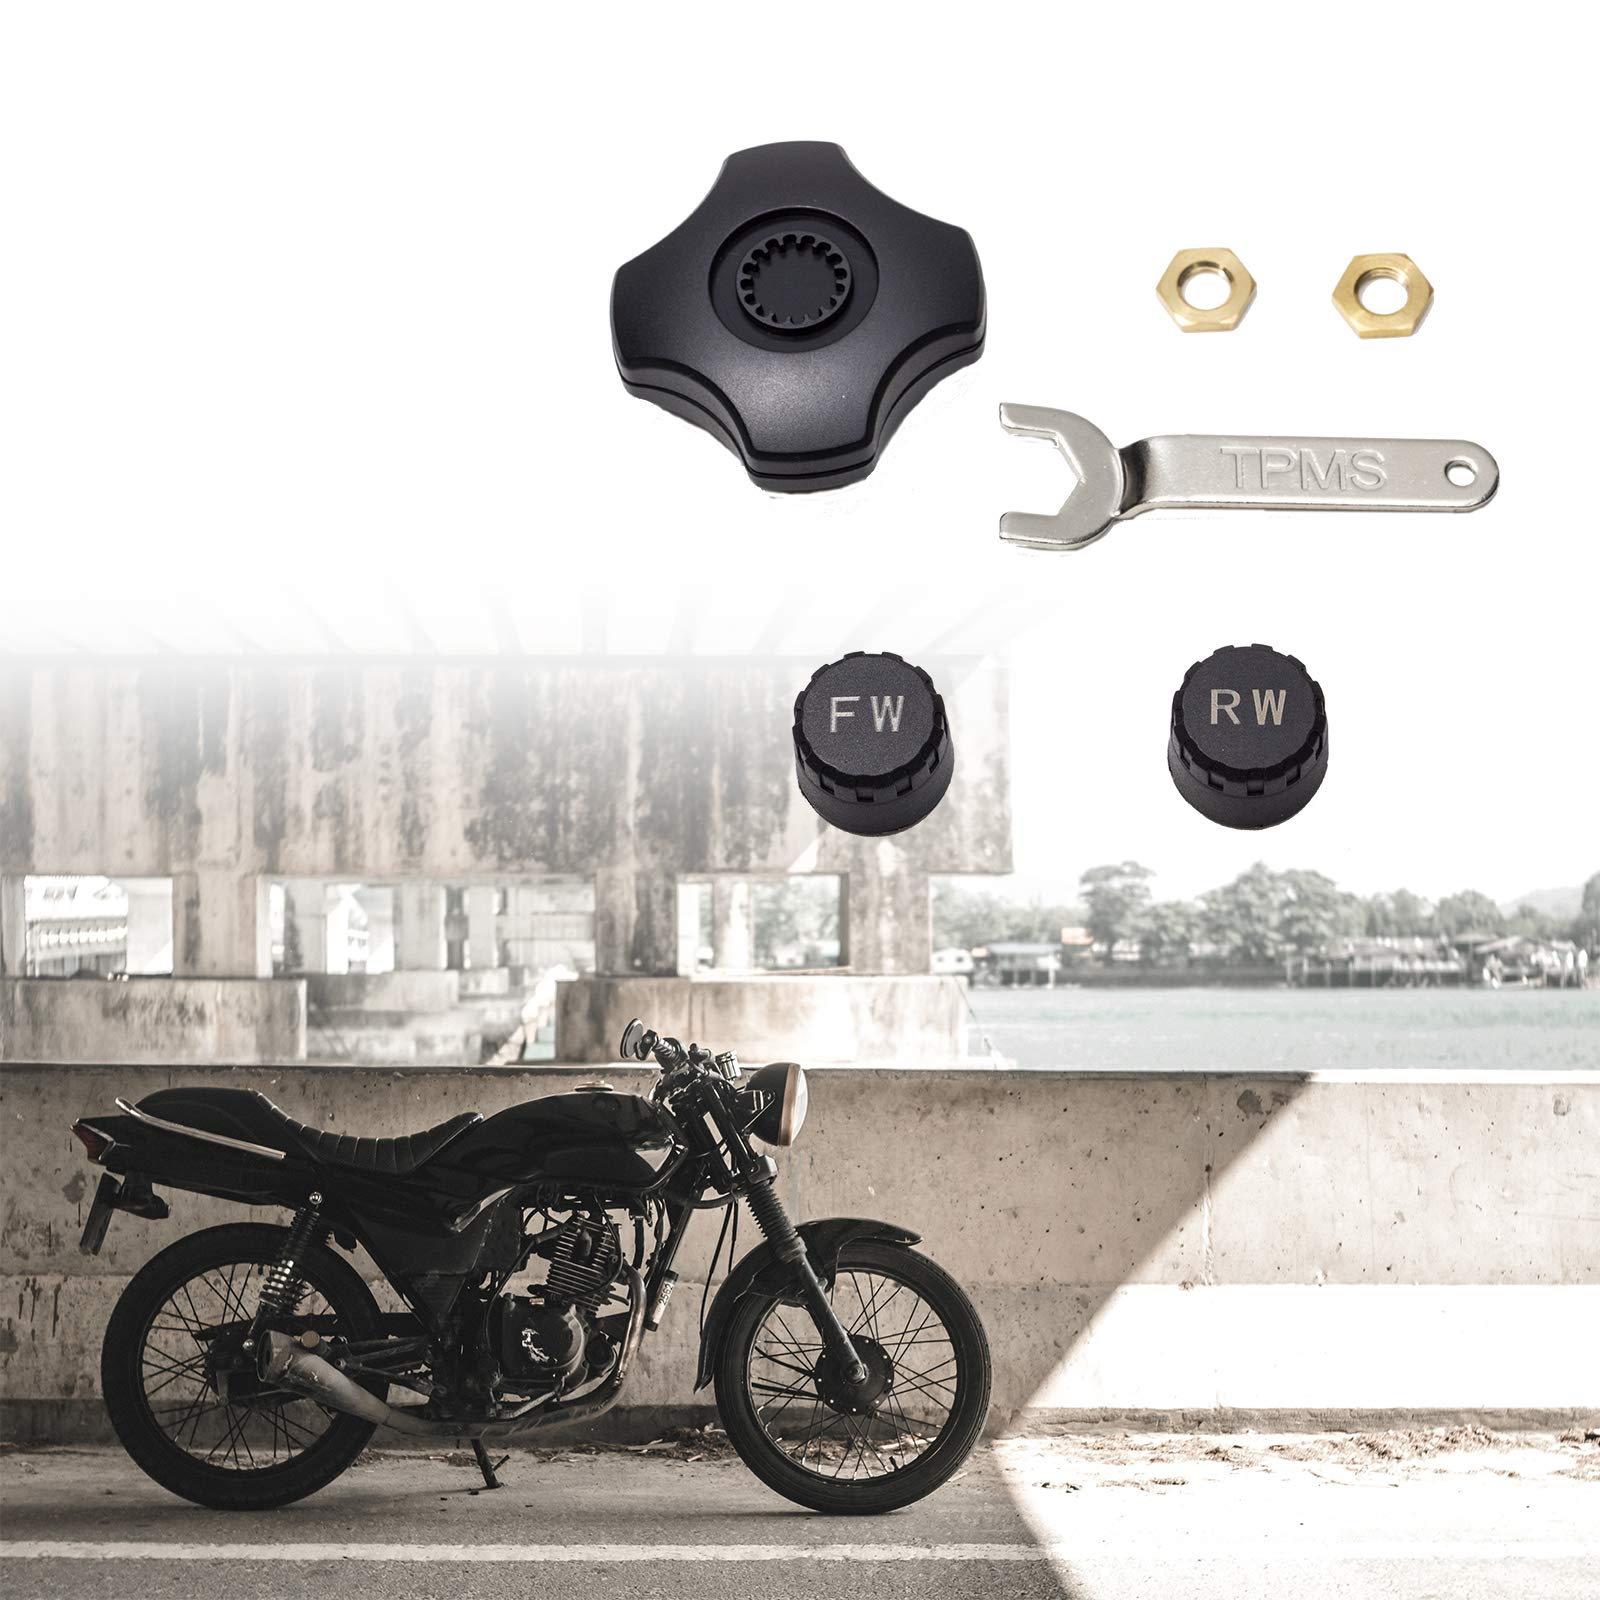 PA Motorcycle External TPMS Tire Pressure Monitoring System Scooter Mobile App Remote Control by PA